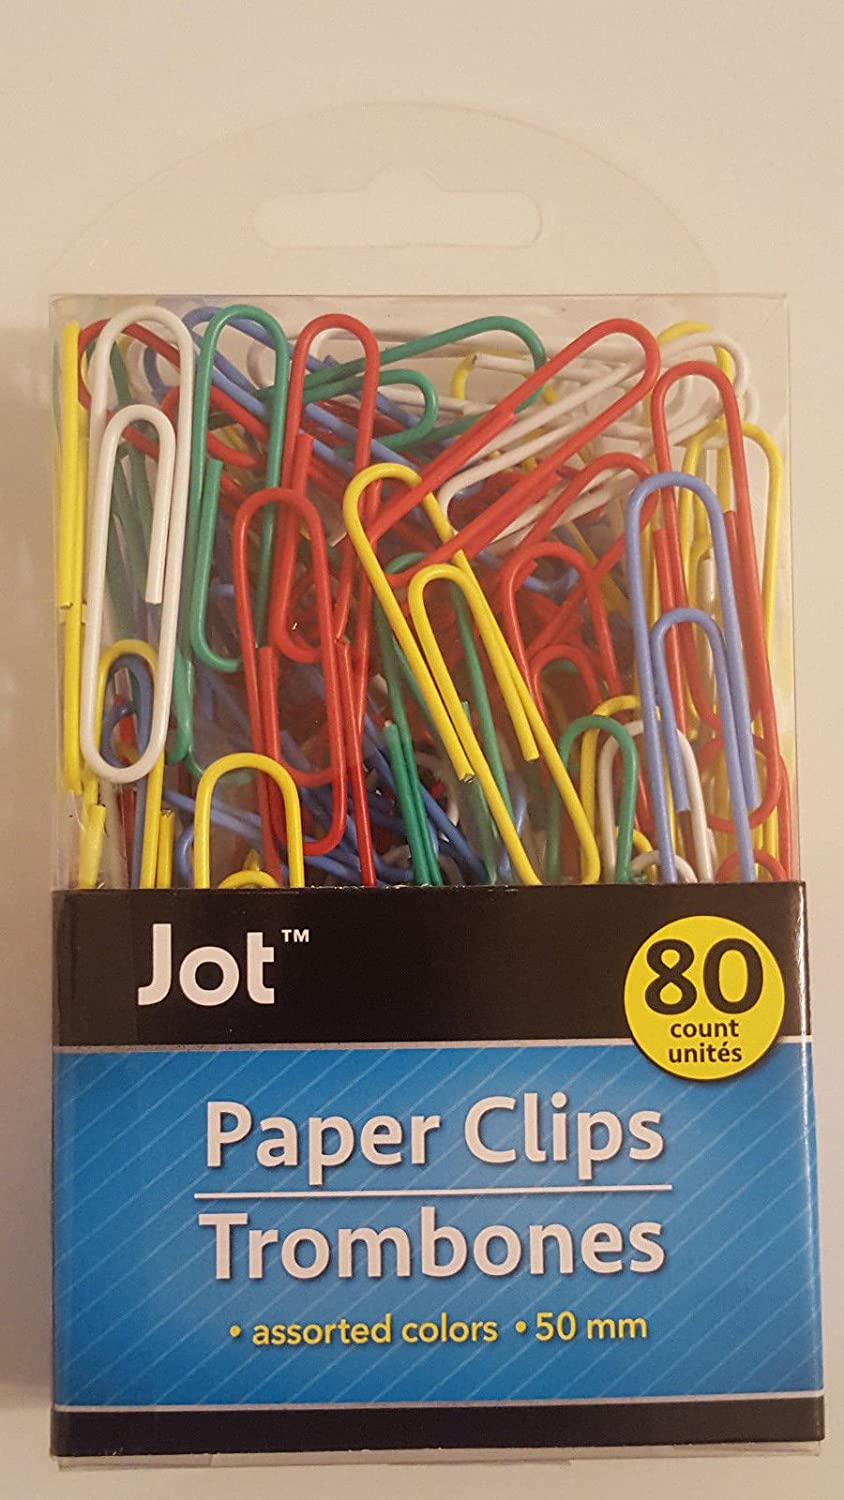 Fast Free Shipping 100 Plastic Coated Jumbo Paper Clips Assorted Color 50 mm